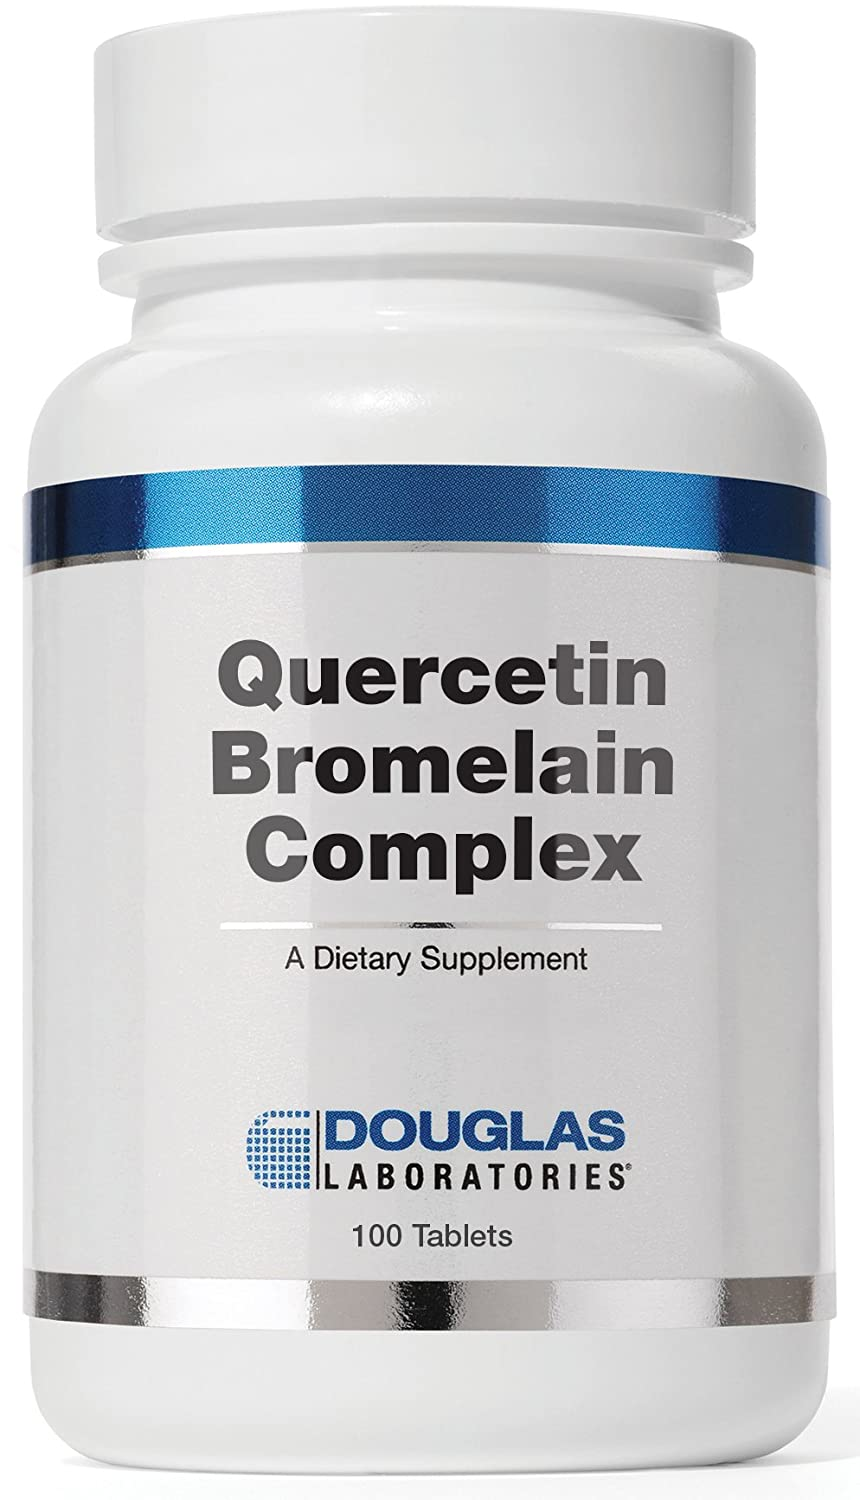 Douglas Laboratories – Quercetin Bromelain Complex – Formulation to Support Vascular and Immune Cell Function* – 100 Tablets